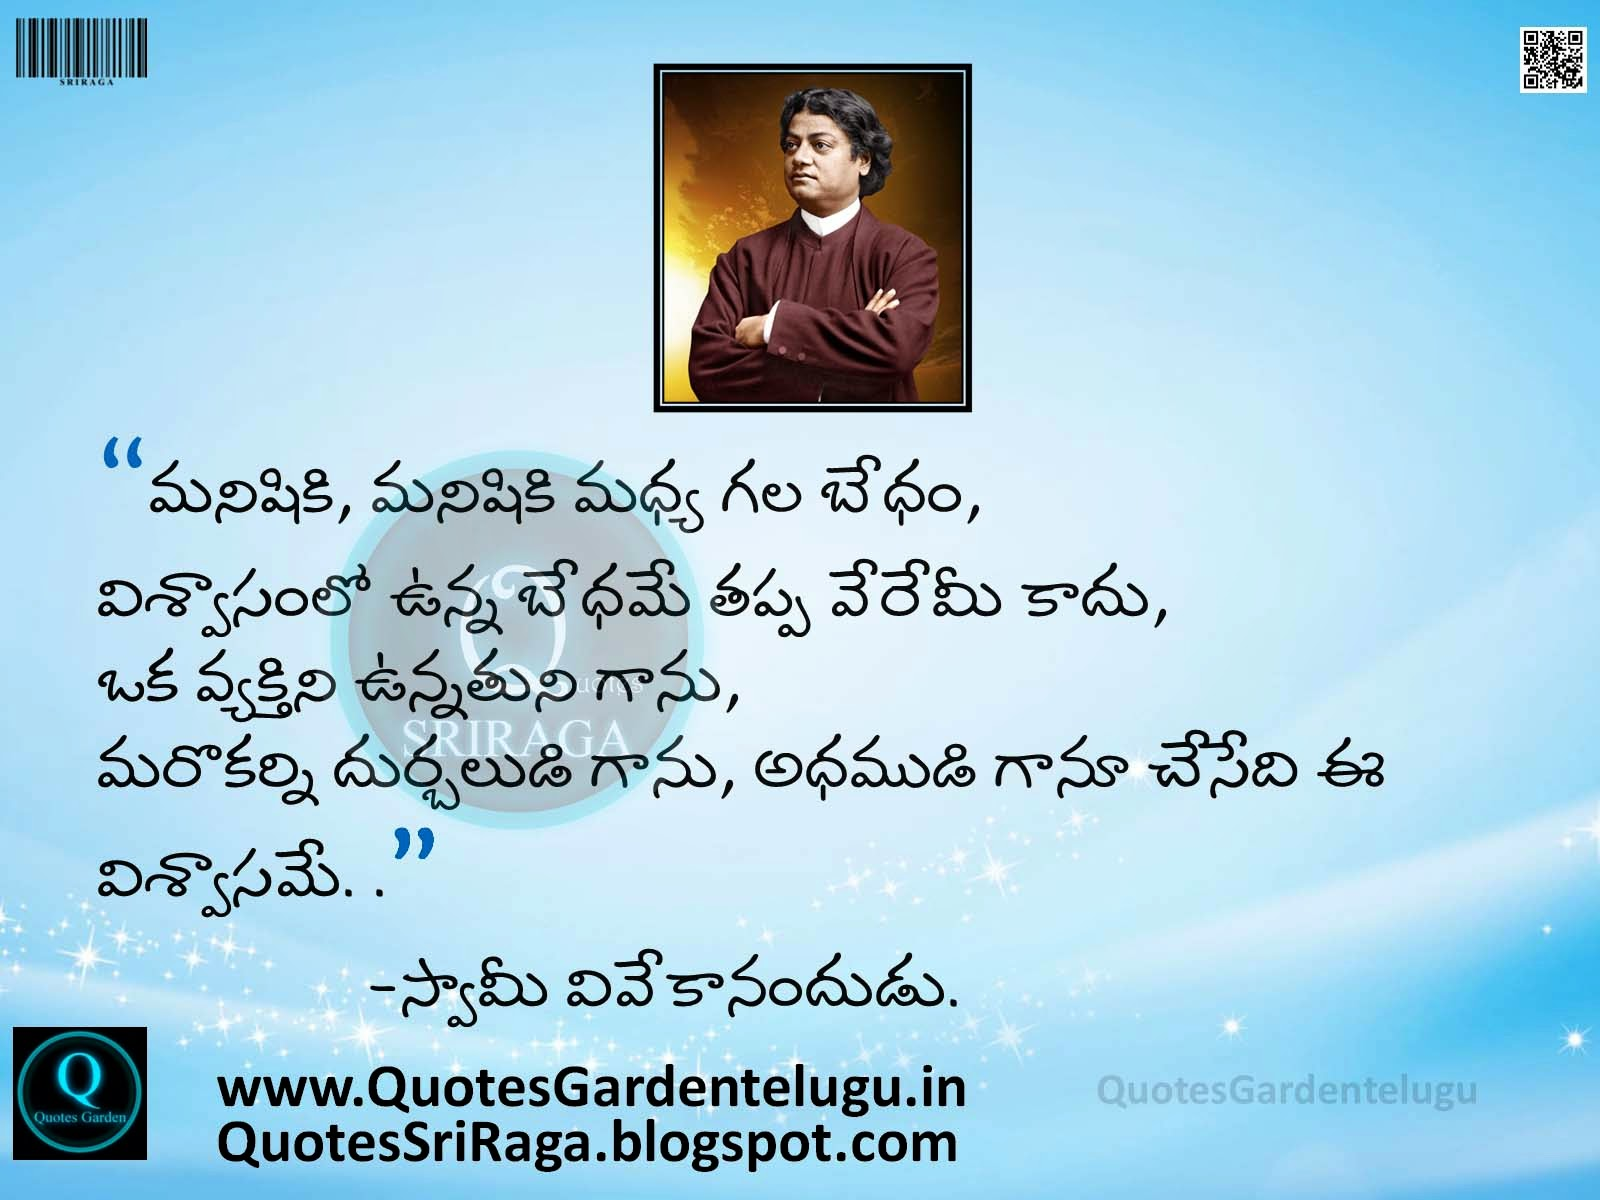 Vivekananda telugu quotes - Vivekananda Best Inpsirational quotes - Good Reads Vivekananda Best top Inspirational famous Quotes vivekananda Best quotes with images with hd wallpapers